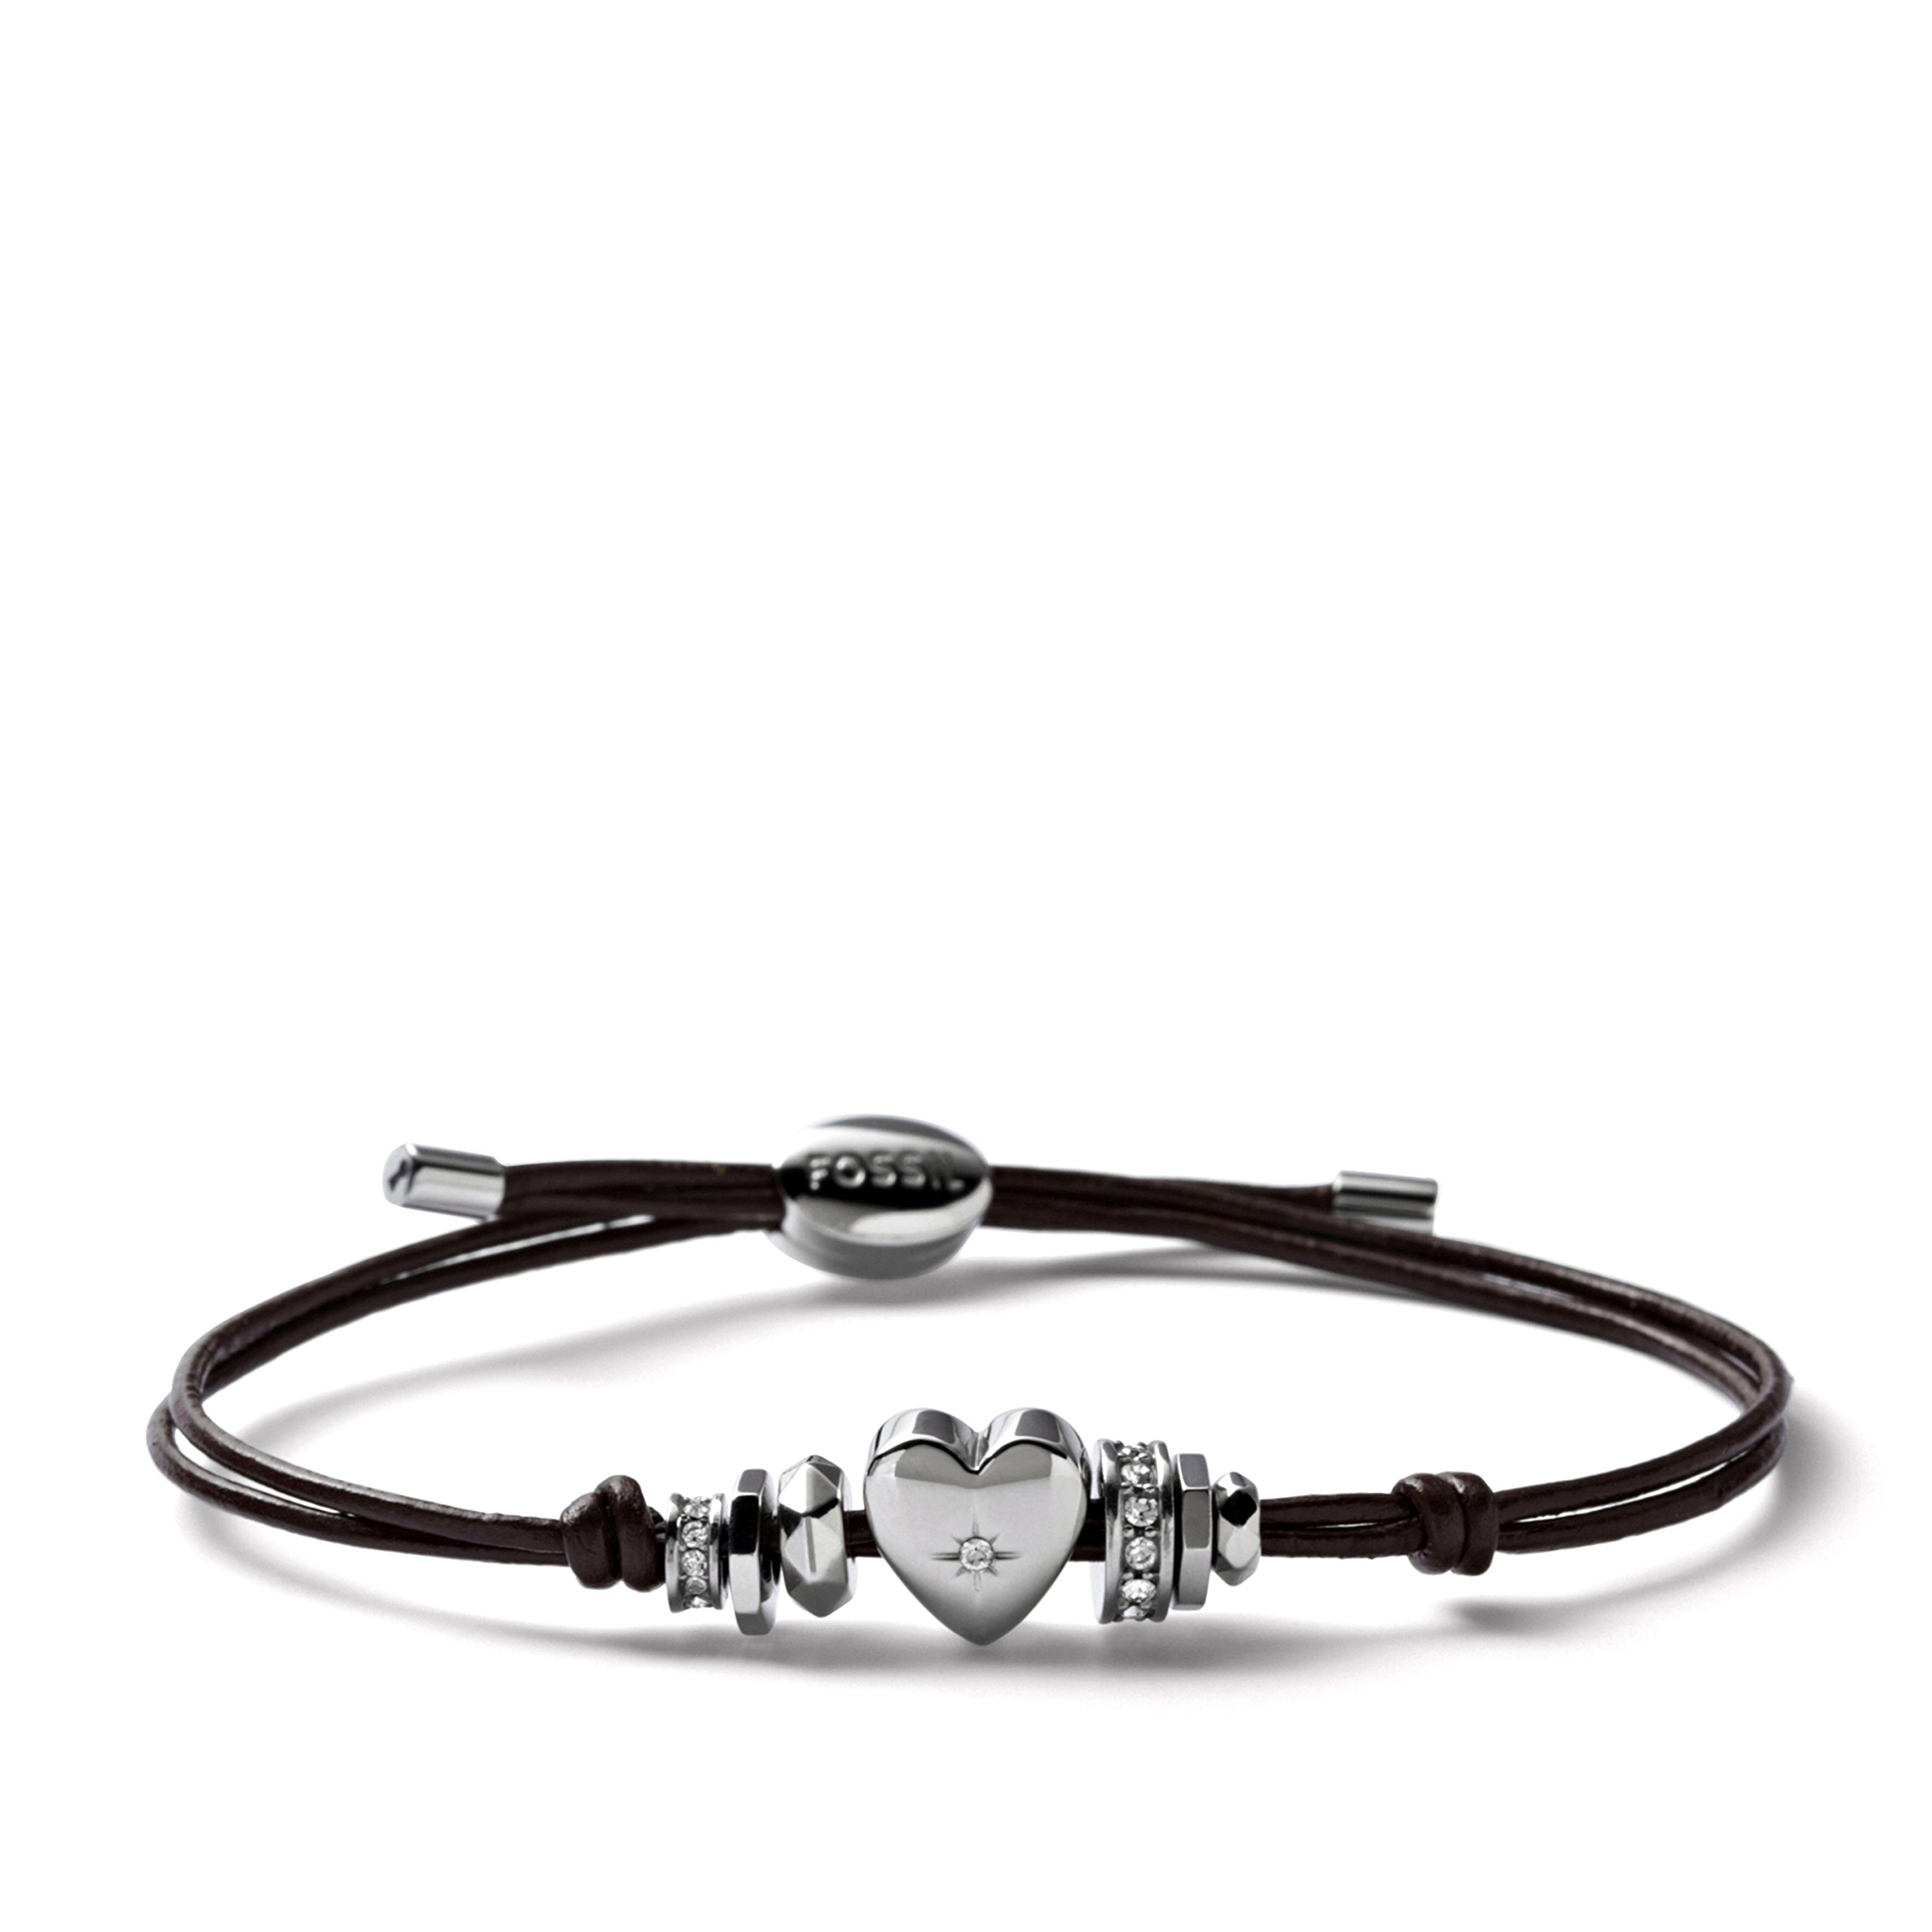 Fossil Women's Jewellery with Strap JF00116040